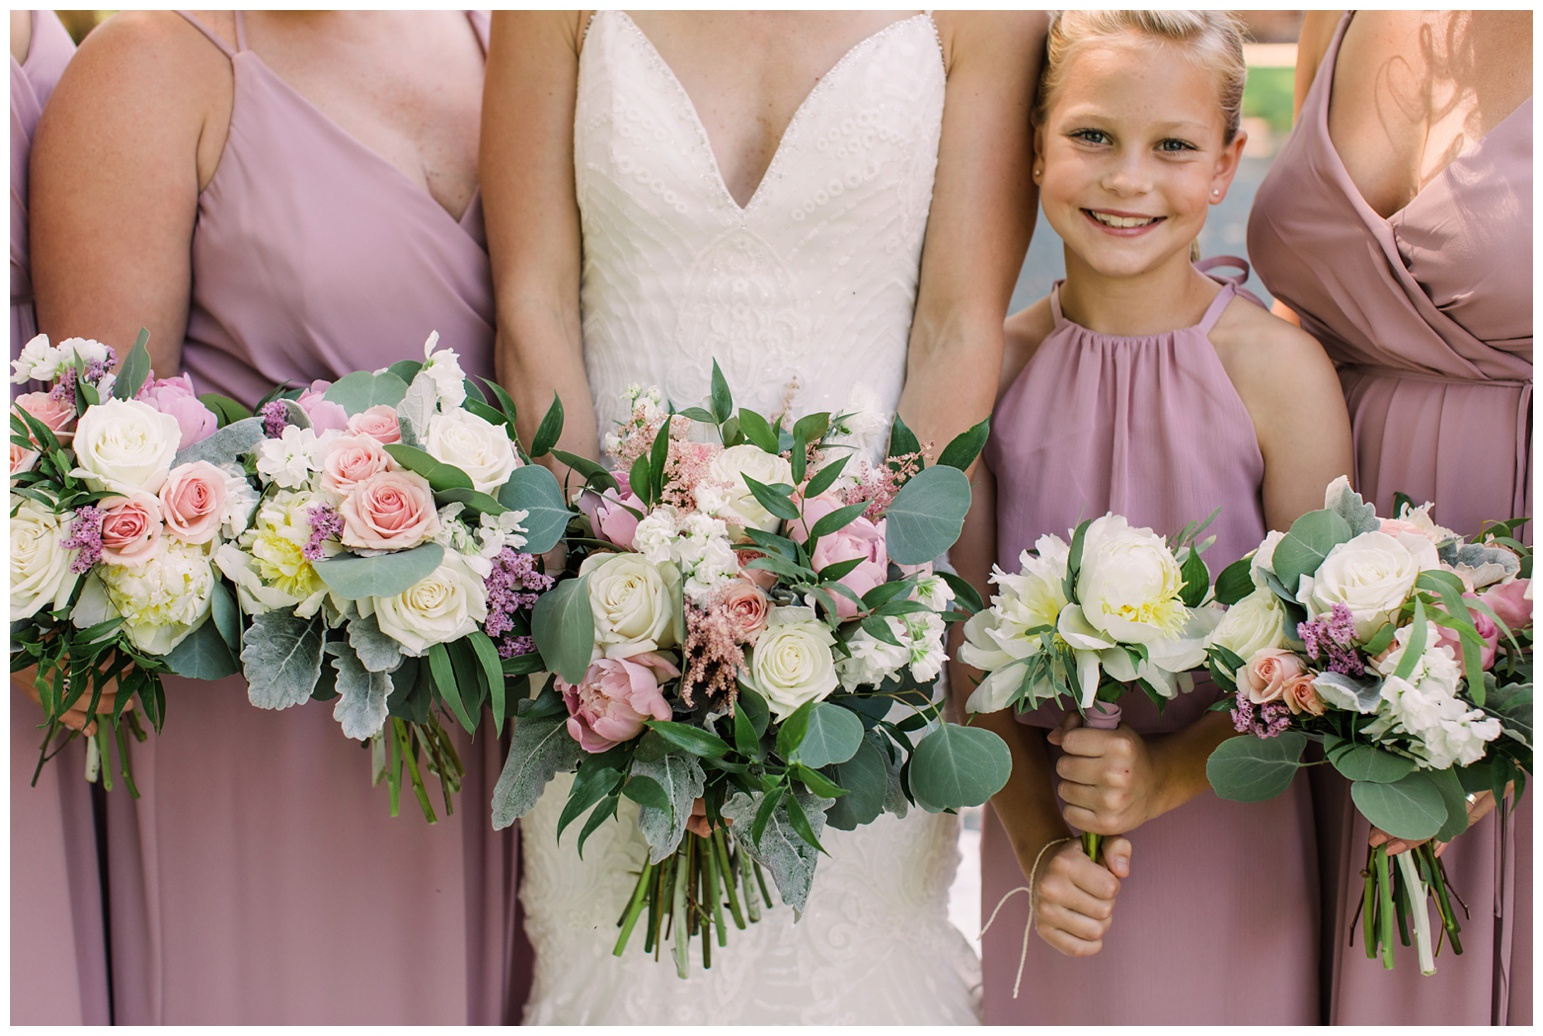 sweet as honey bee inspired wedding at worsell manor maryland on My Eastern Shore Wedding - coastal - sea - nautical - eastern shore - inspired wedding ideas and inspo - photo of pink and purple florals closeup with light purple bridesmaid dresses and matching flower girl dress and bride's wedding gown